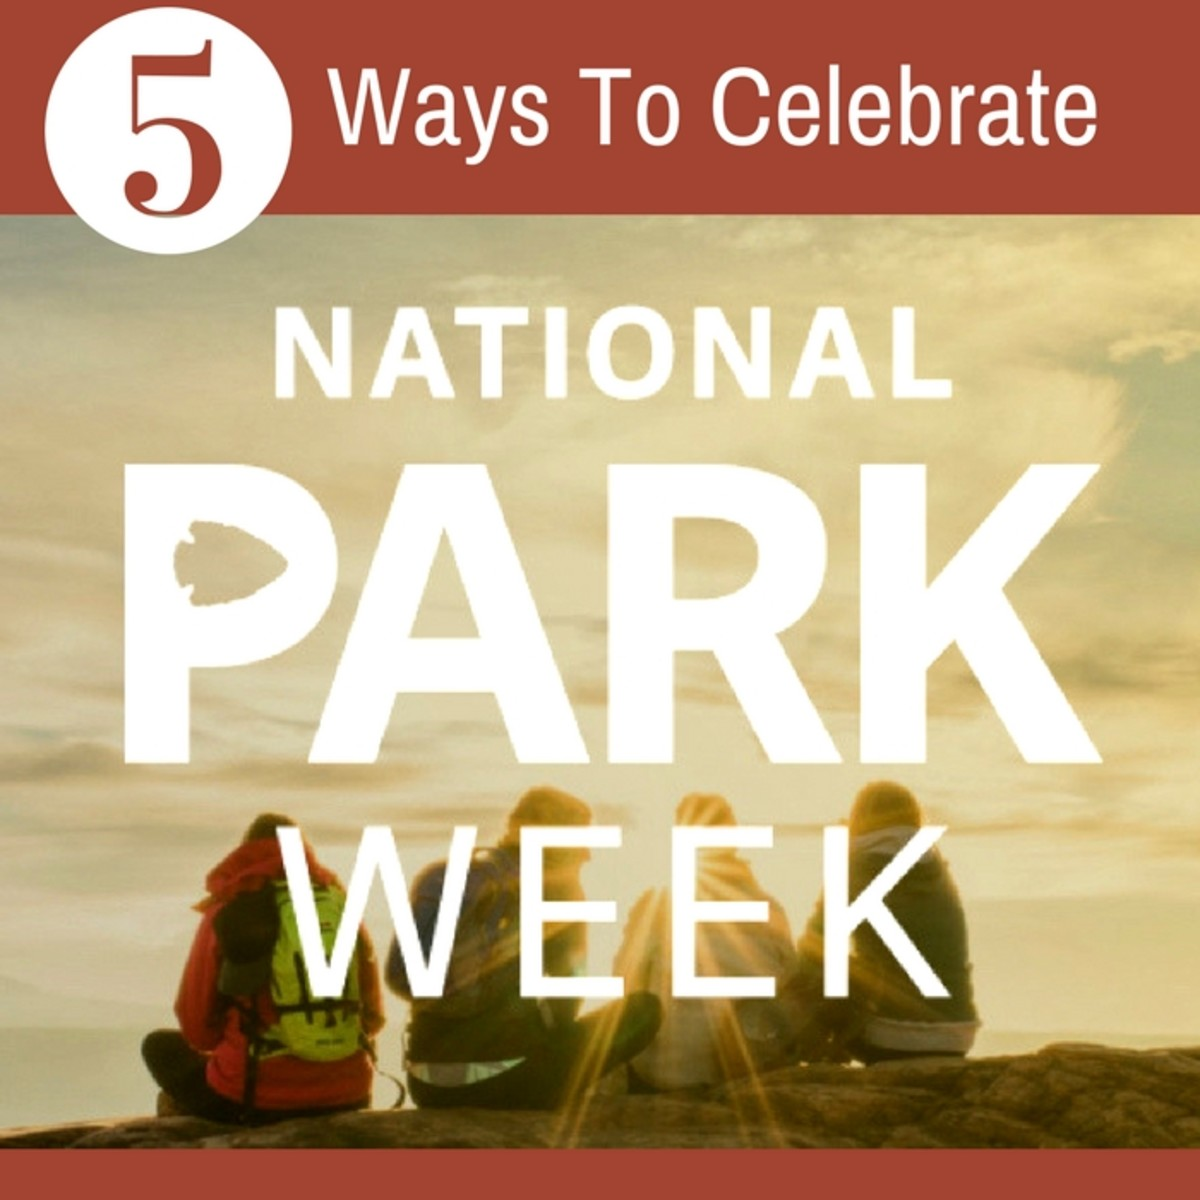 5 Ways to Celebrate National Parks